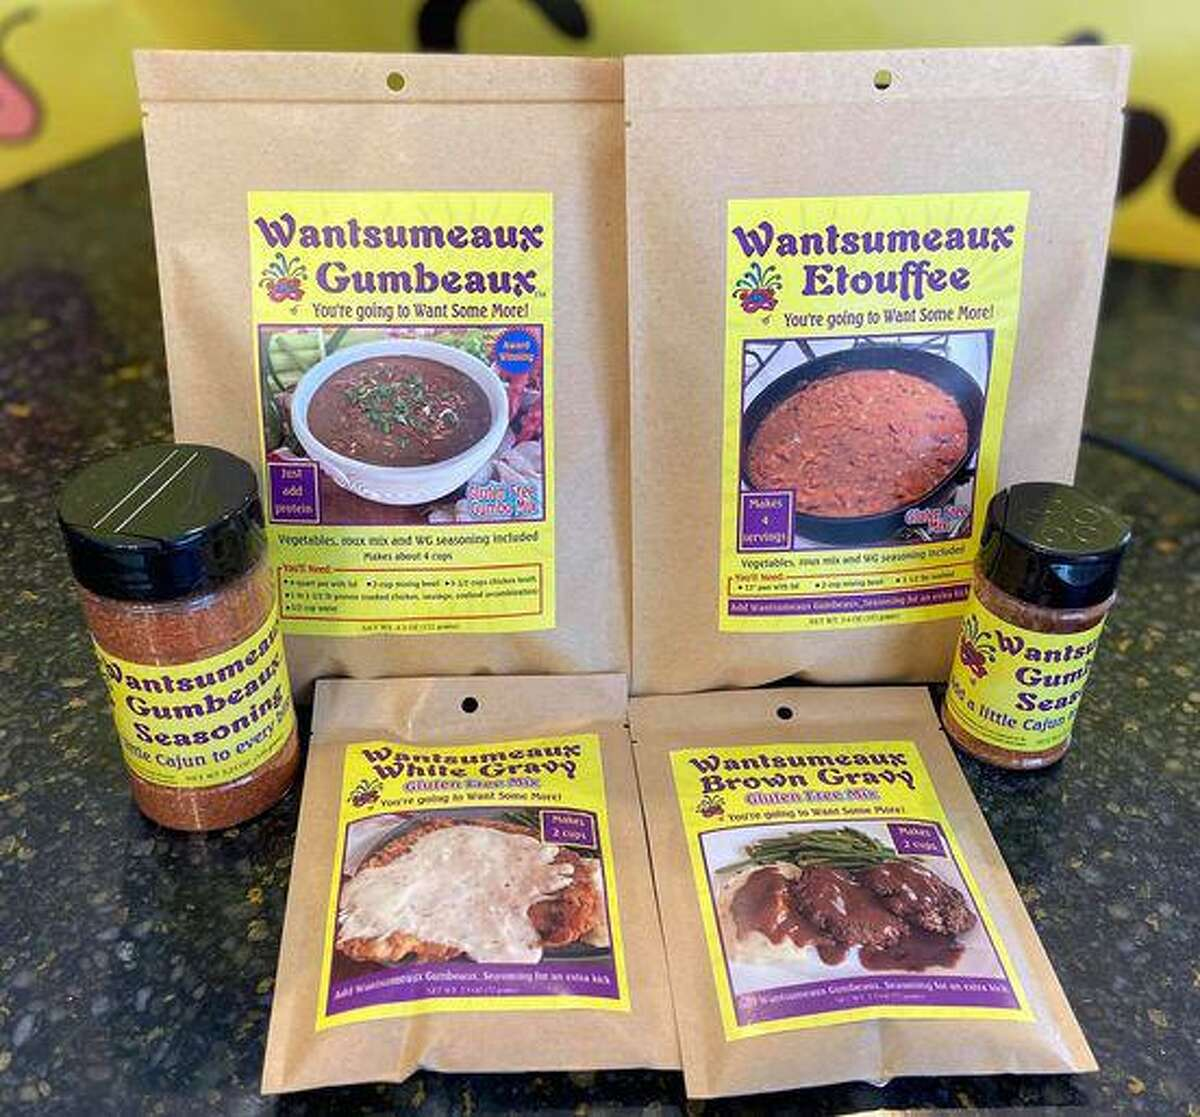 Siblings Susan Armand and Wes Pate started cooking gumbo competitively in 2006. Now they sell gluten-free dry mixes under their Wantsumeaux Gumbeaux team name.